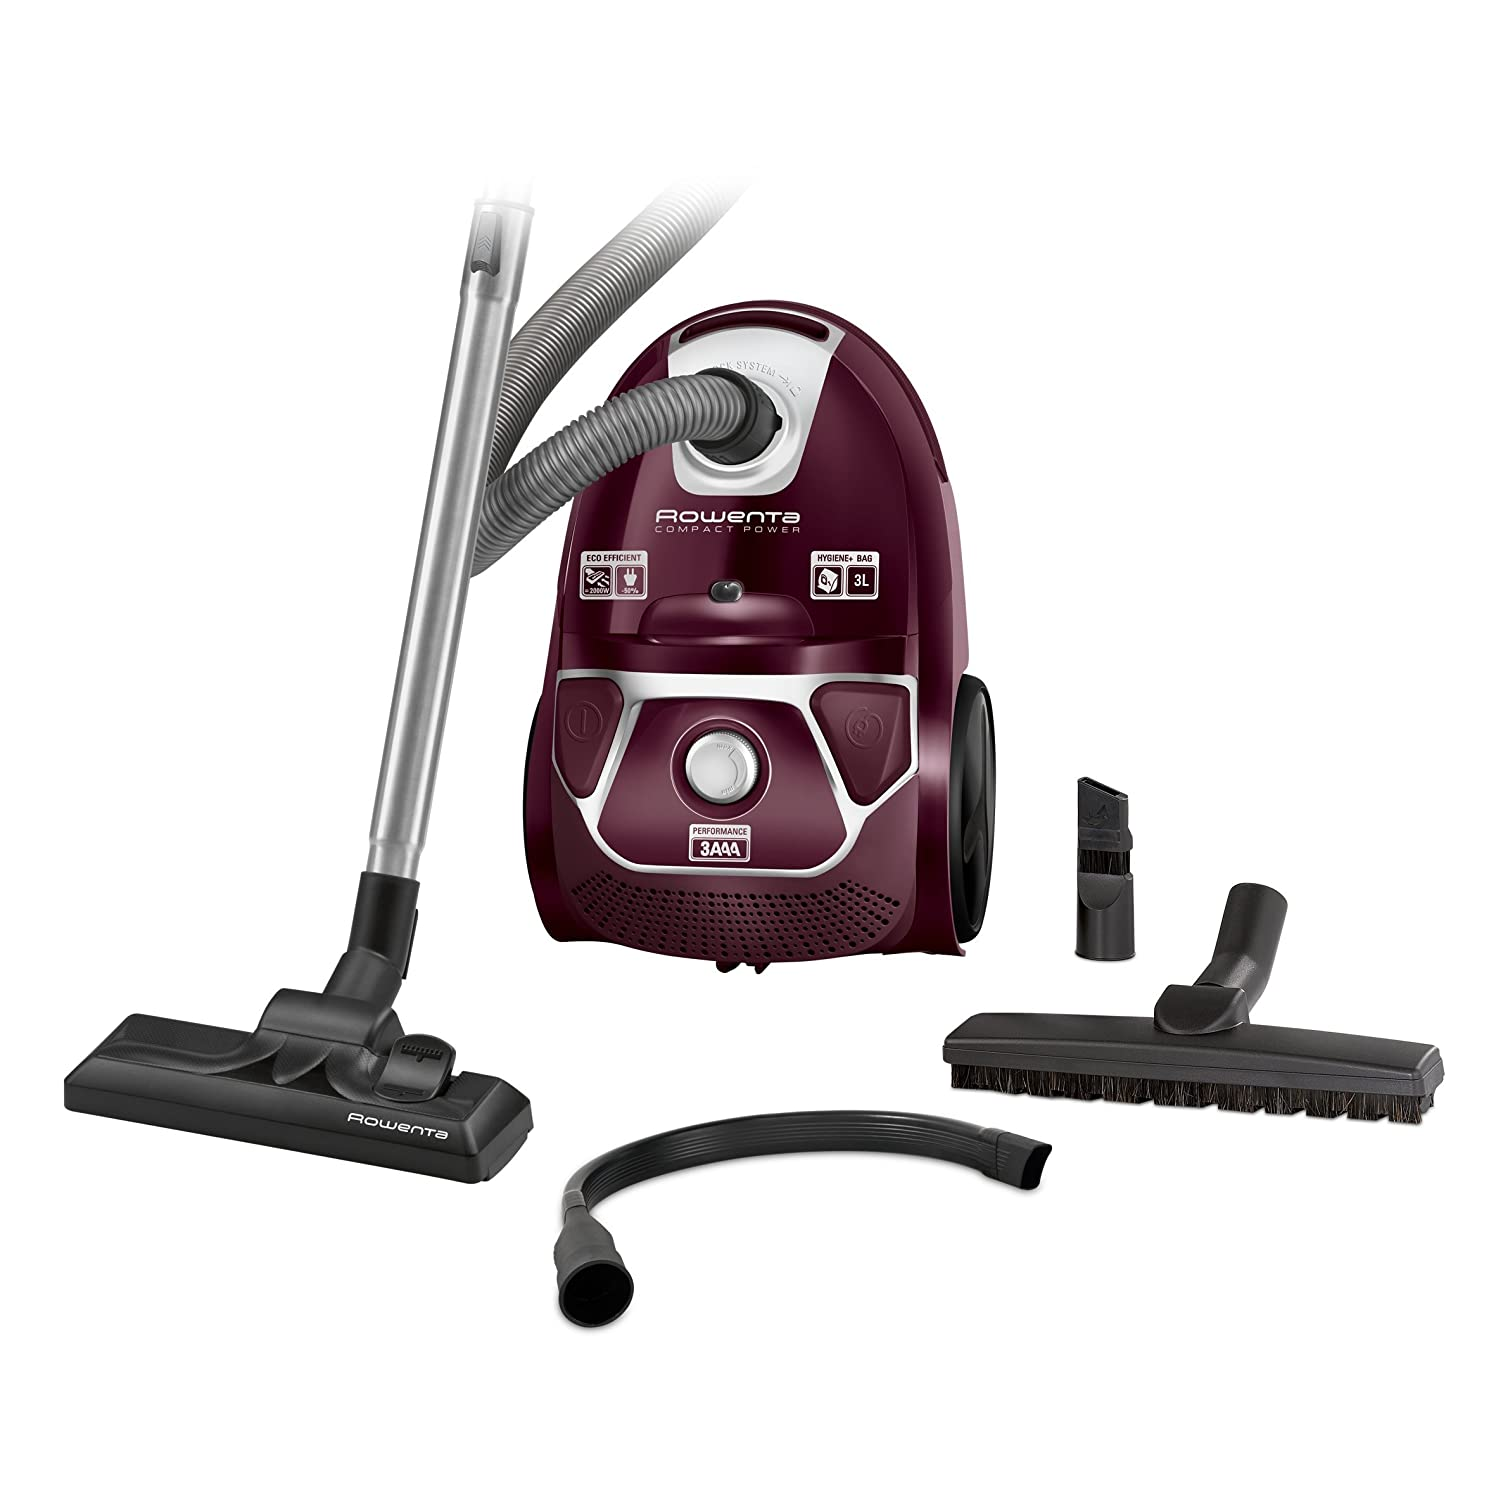 Amazon.com: Rowenta - Bagged Vacuum Cleaner Rowenta RO3969EA ...